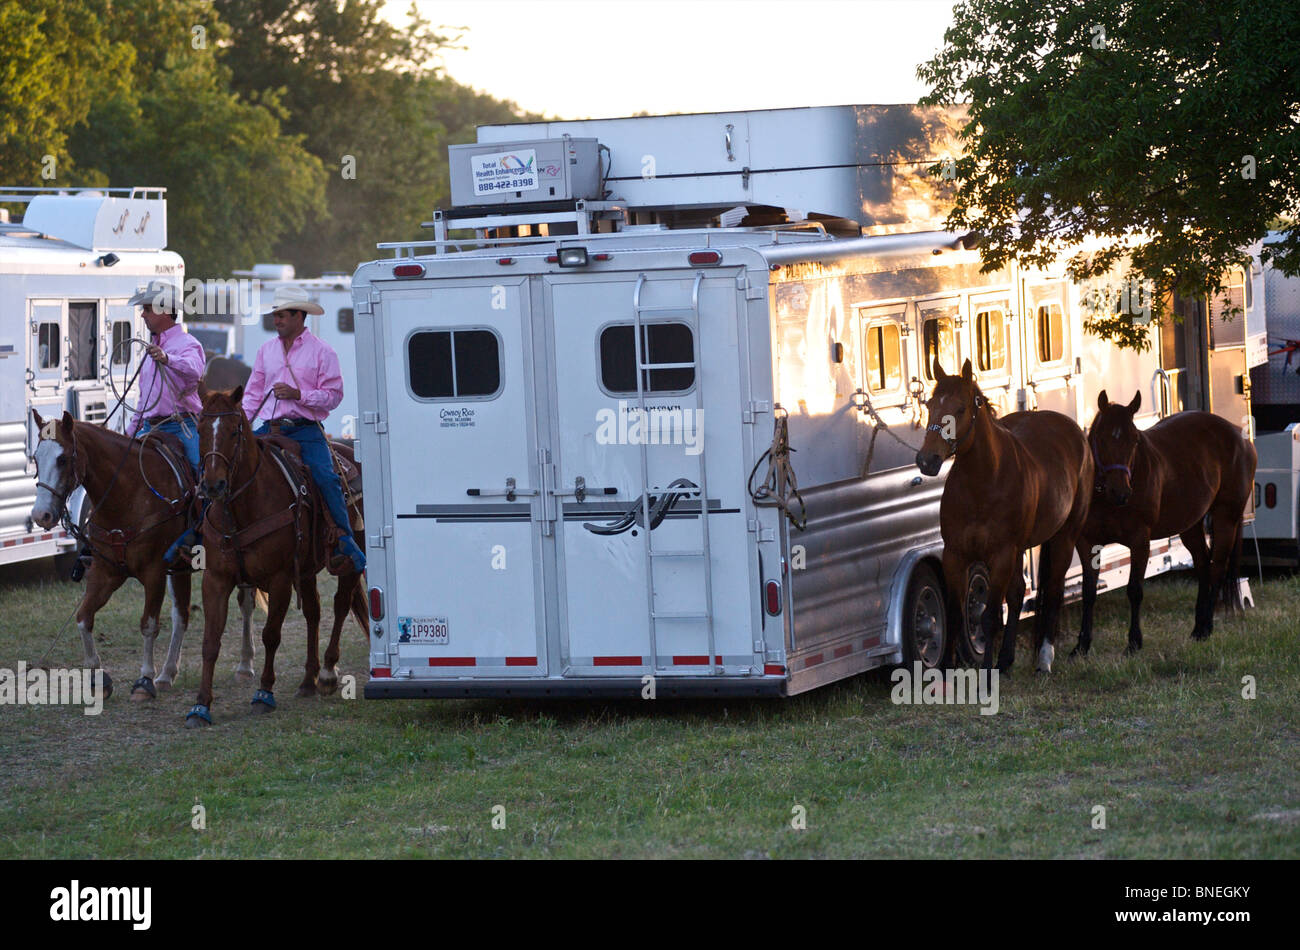 Cowboy members of PRCA riding horses backstage at rodeo event in Bridgeport Texas, USA - Stock Image